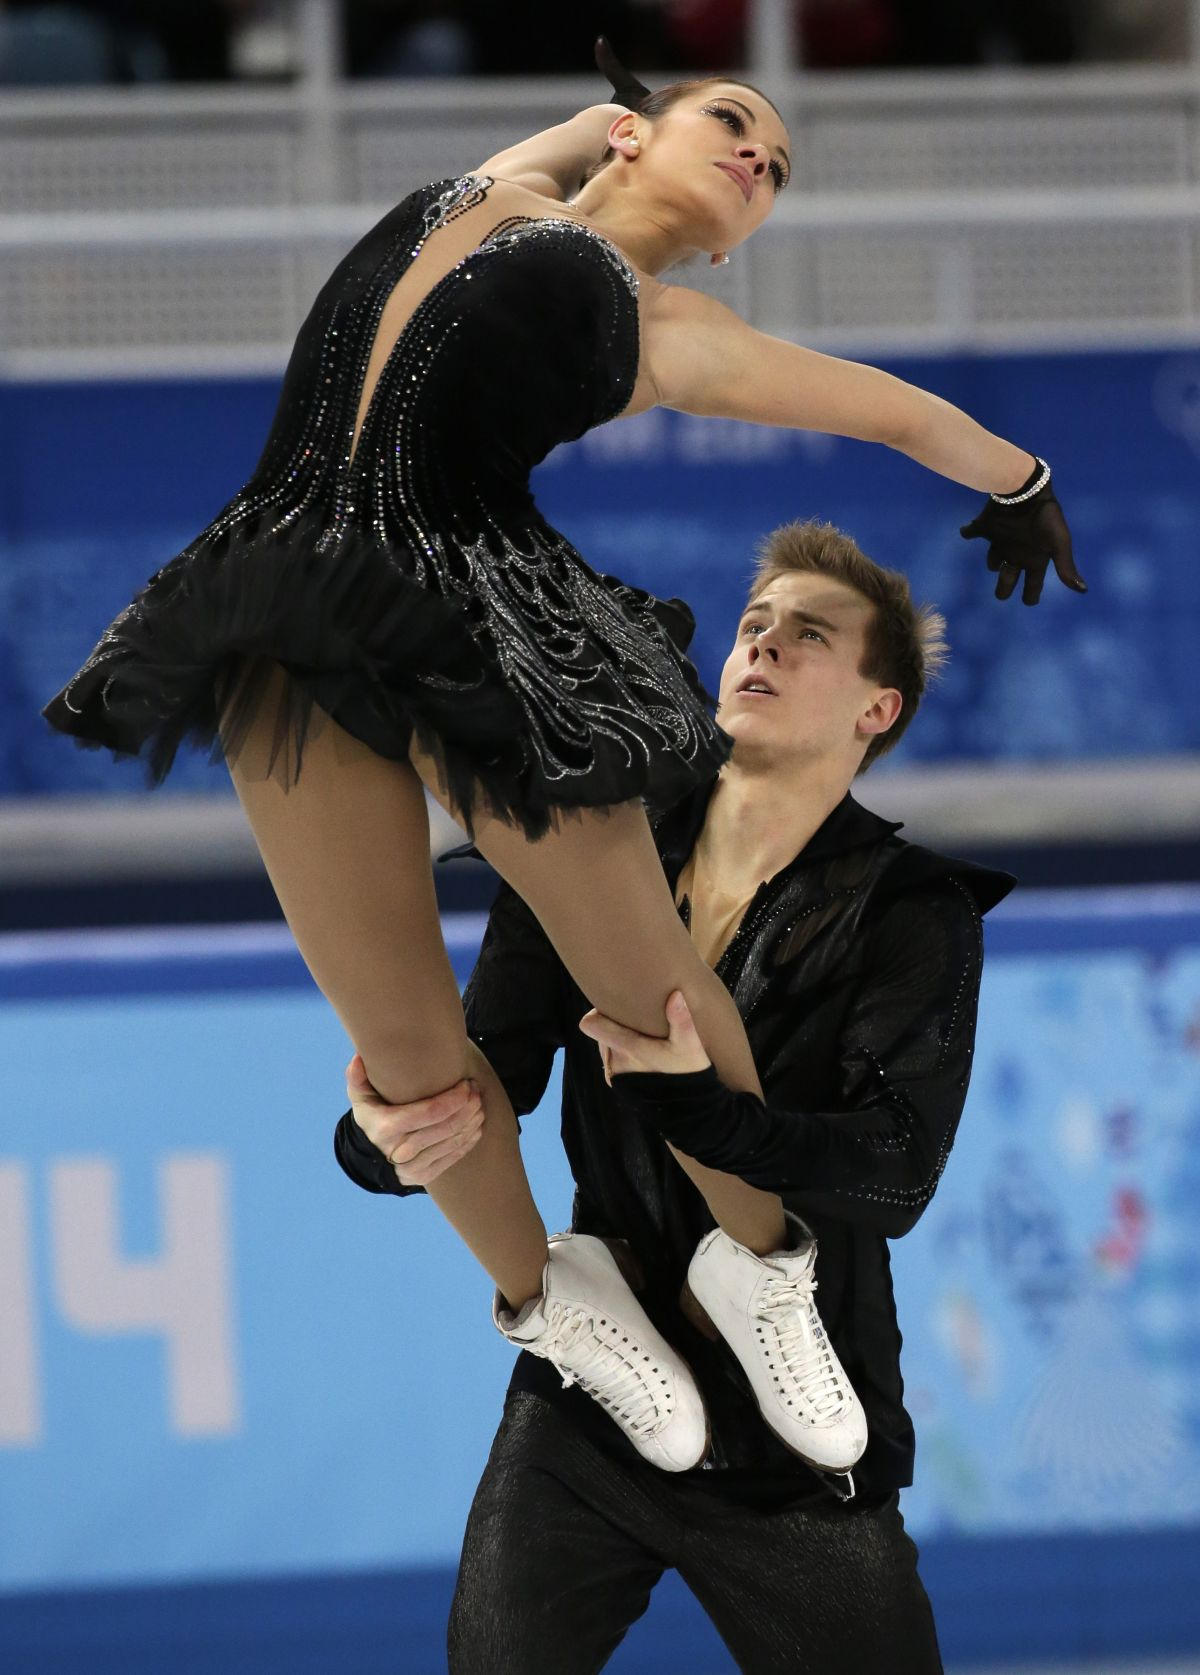 ELENA ILINYKH and Nikita Katsalapov at 2014 Winter Olympics in Sochi